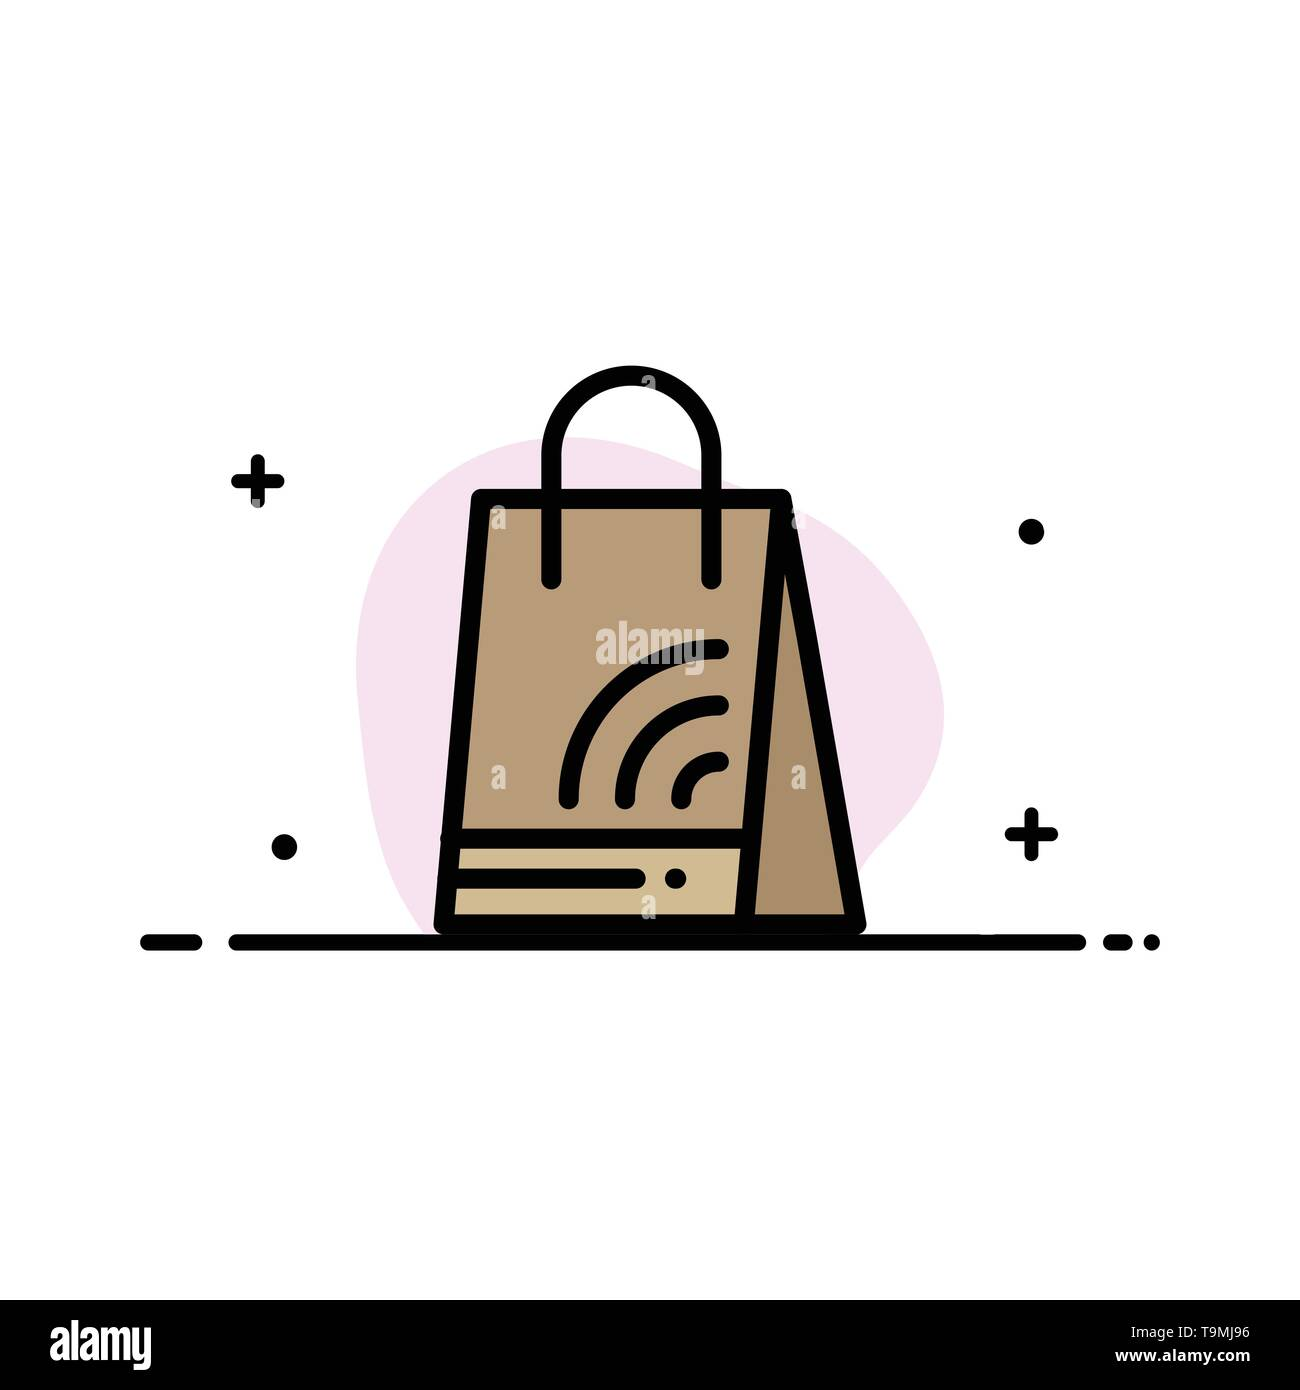 Bag, Handbag, Wifi, Shopping  Business Flat Line Filled Icon Vector Banner Template - Stock Image